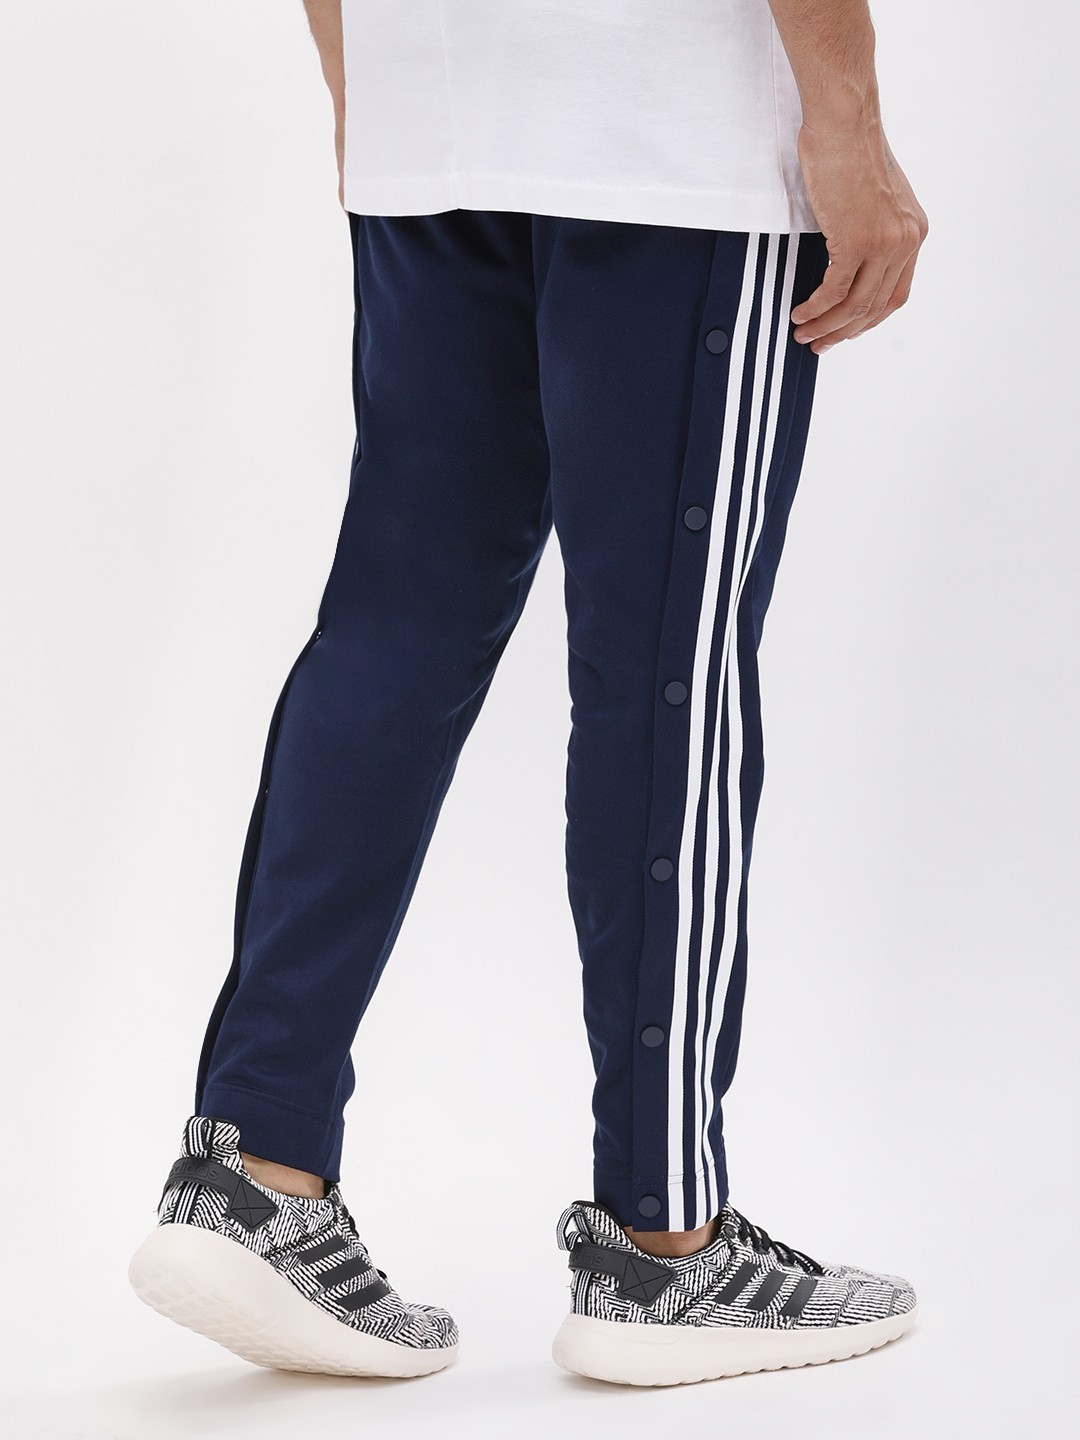 limited price where to buy good quality Buy Adidas Originals Blue Snap Pants for Men Online in India